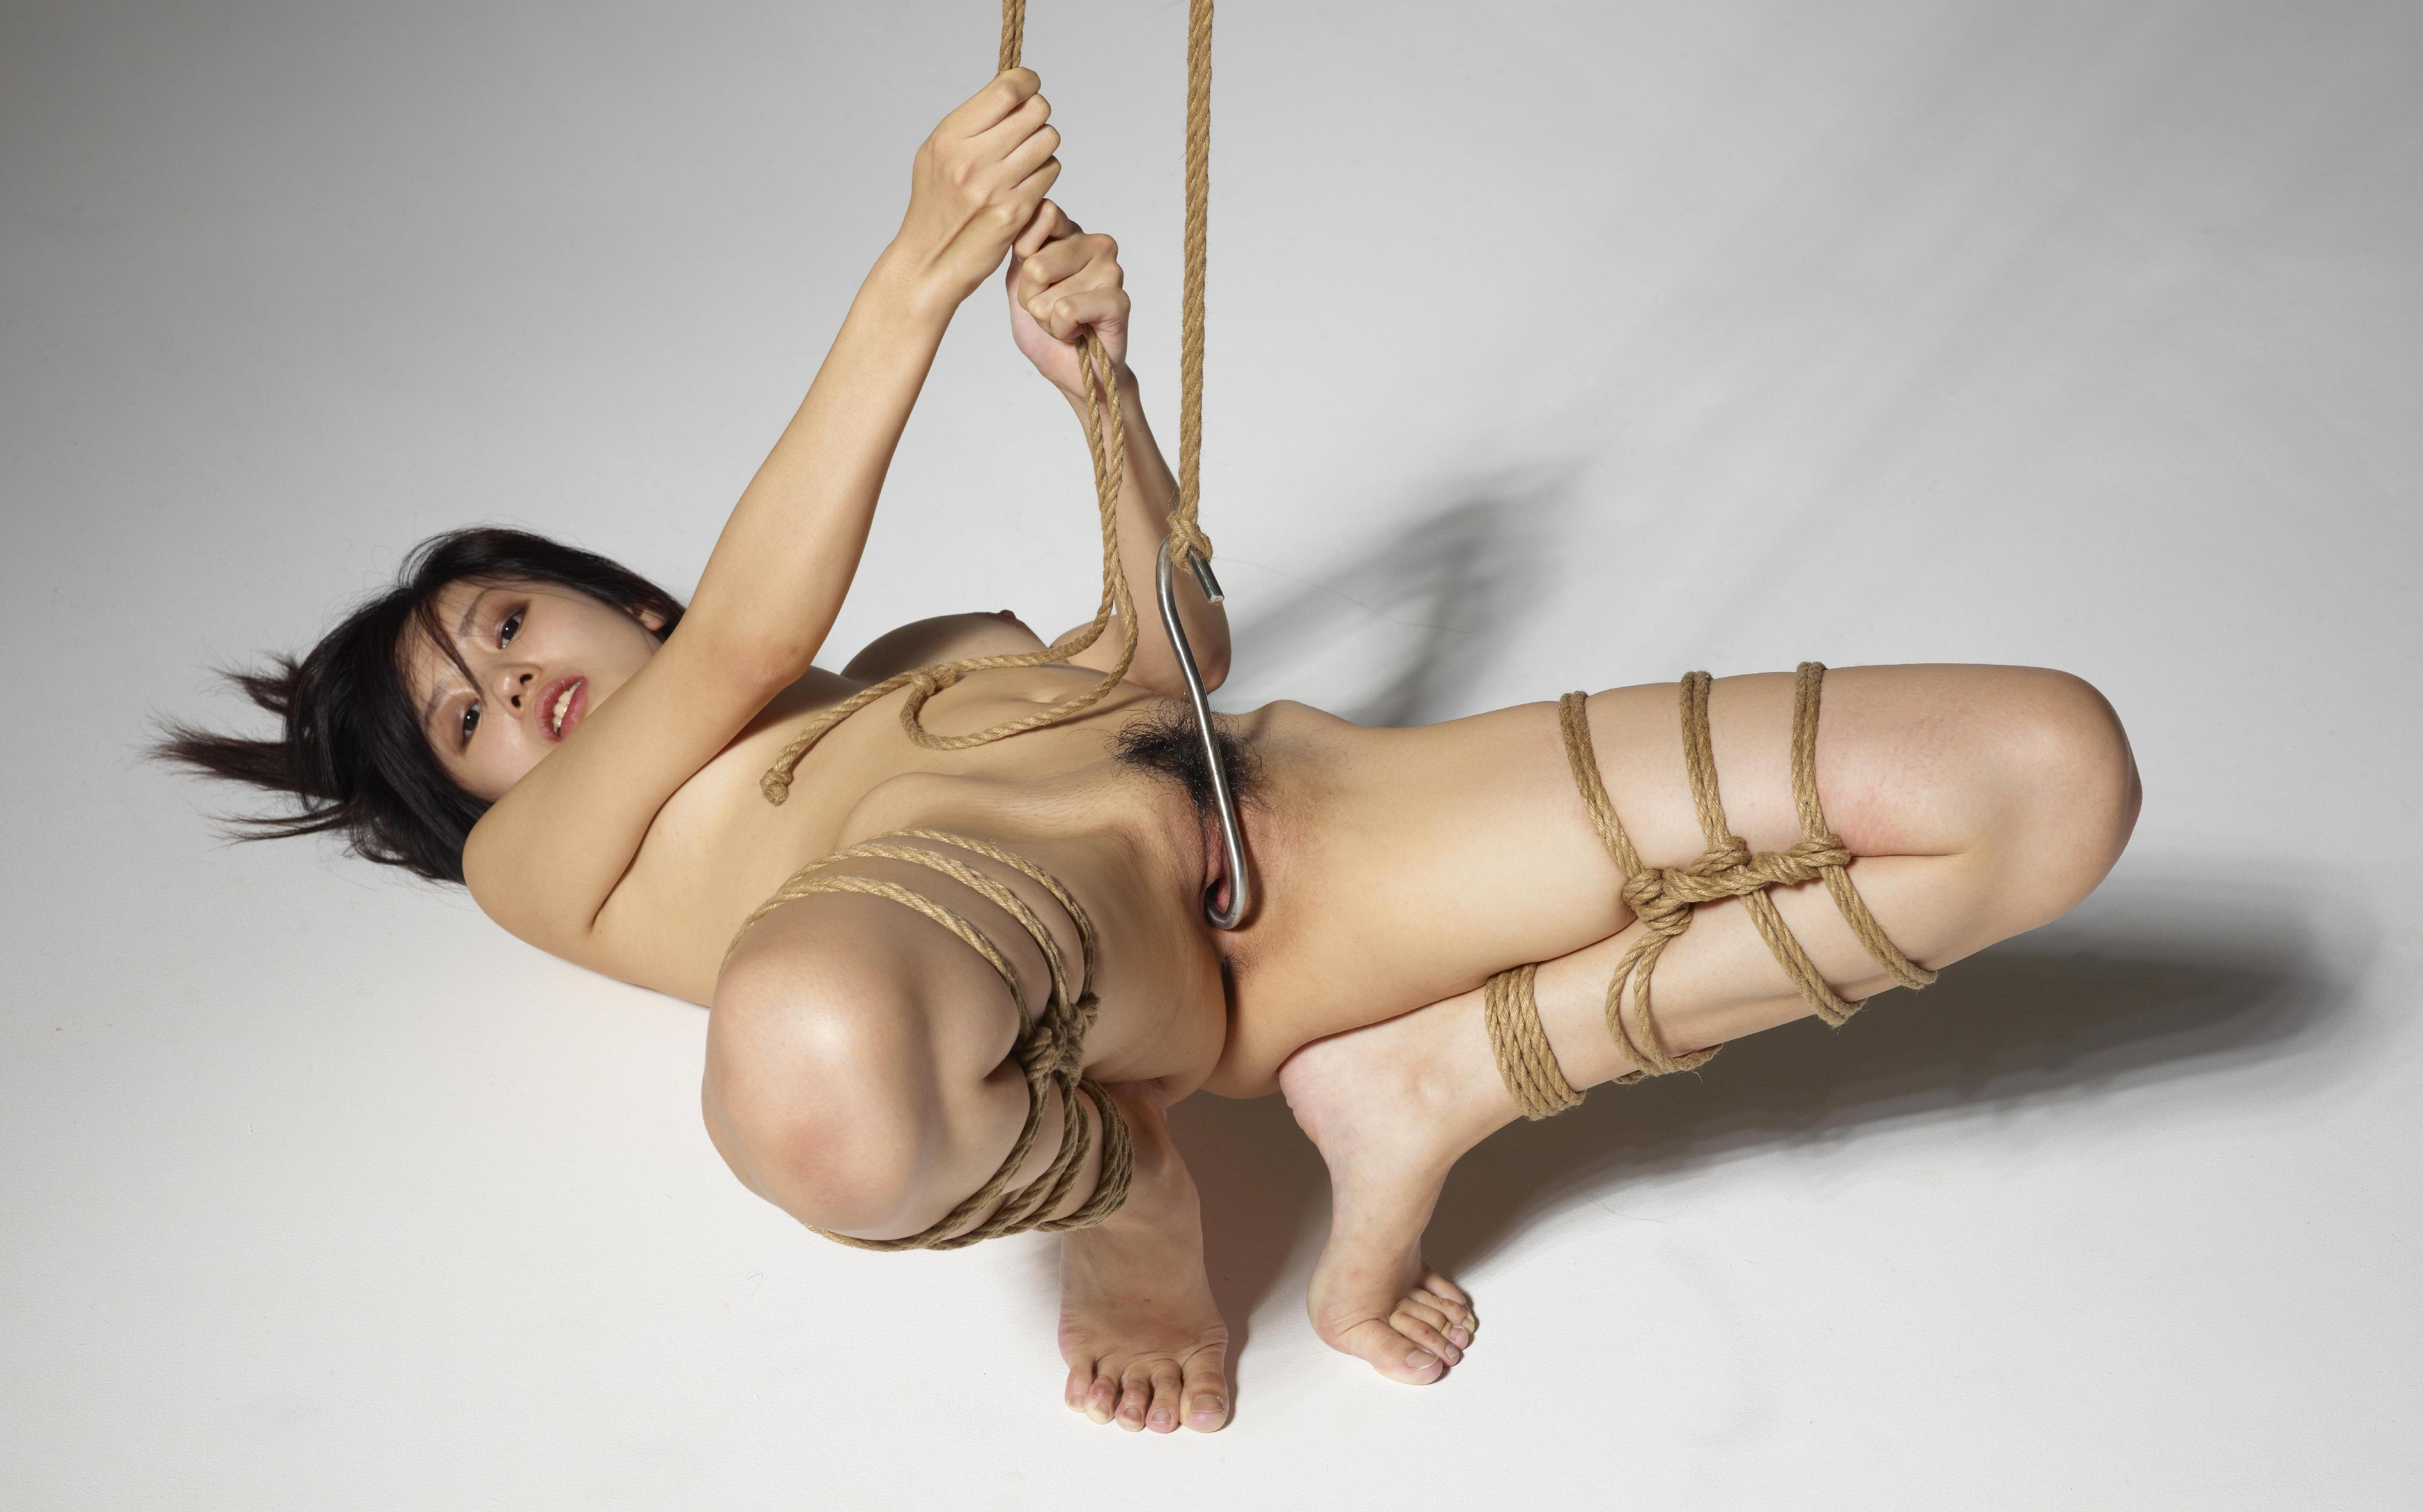 Bondage bdsm asian girls